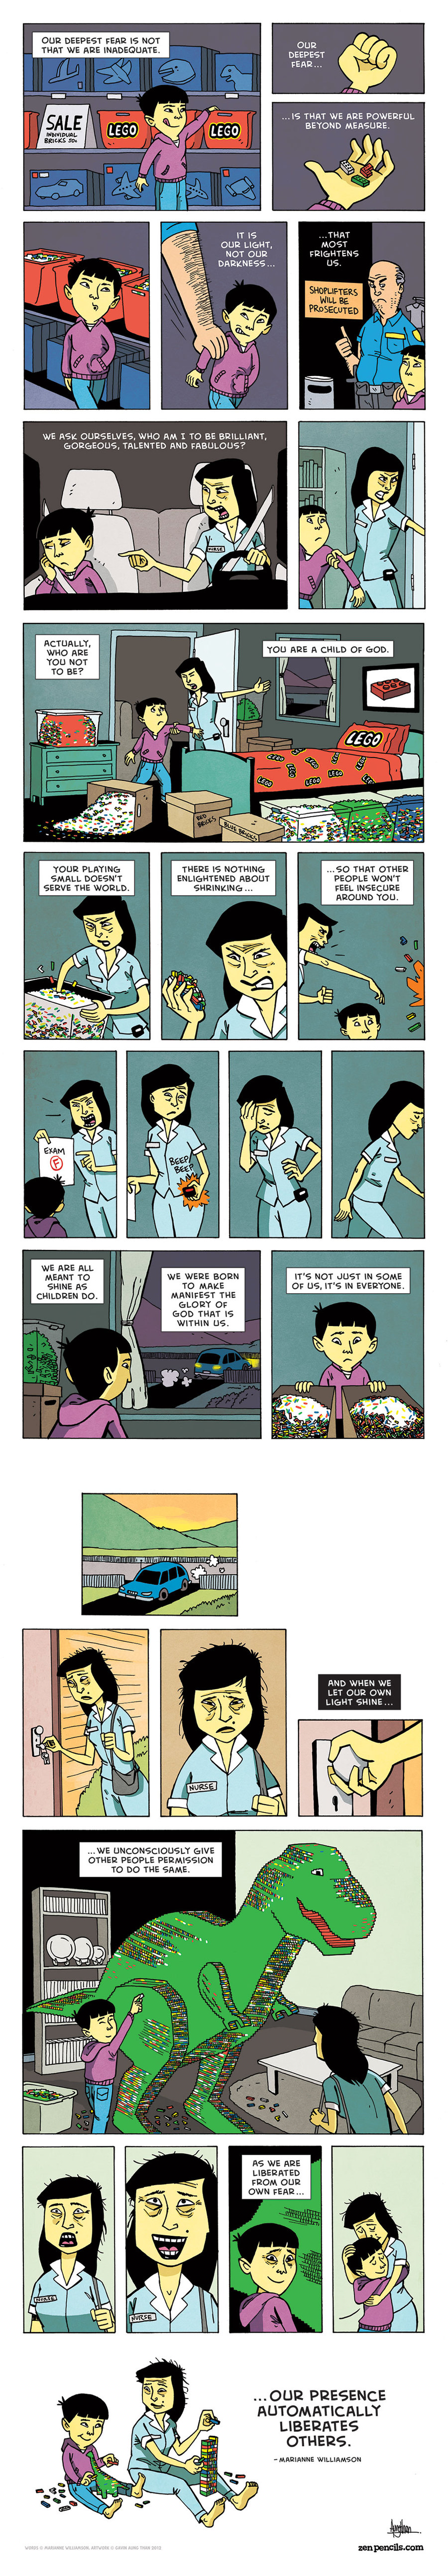 Zen Pencils for Nov 8, 2013 Comic Strip